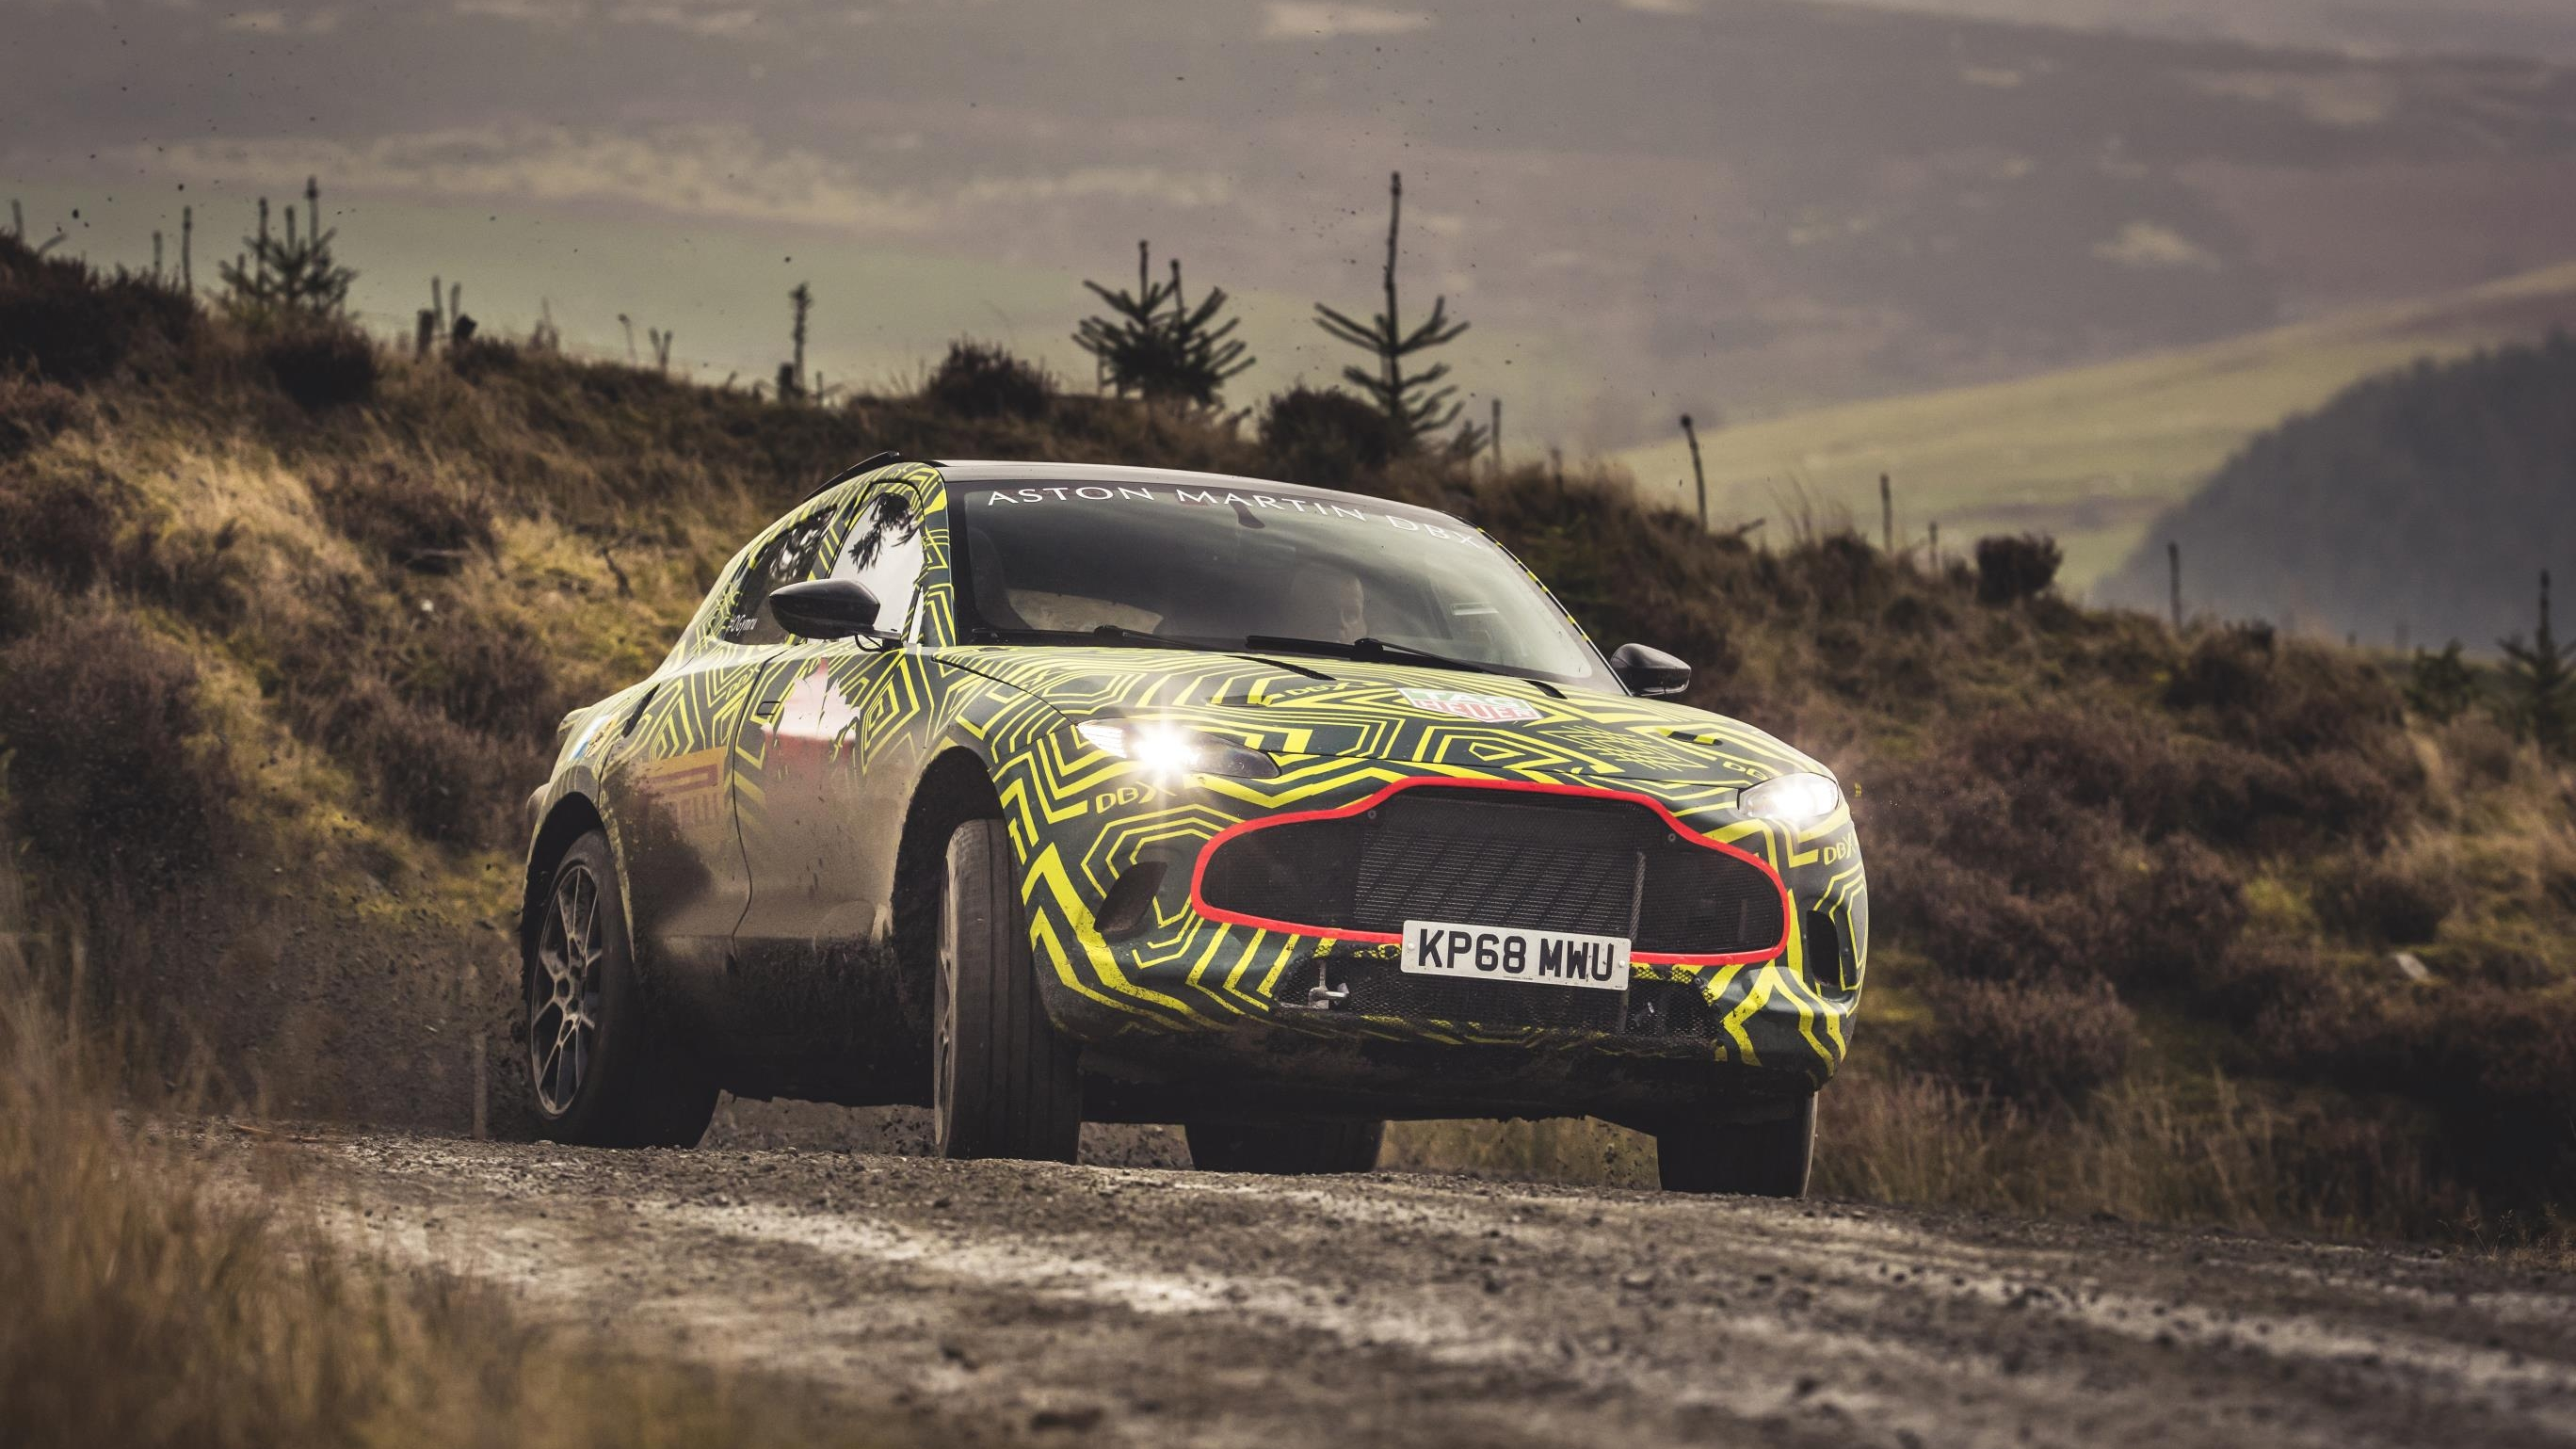 2020 Aston Martin DBX Pictures, Photos, Wallpapers.